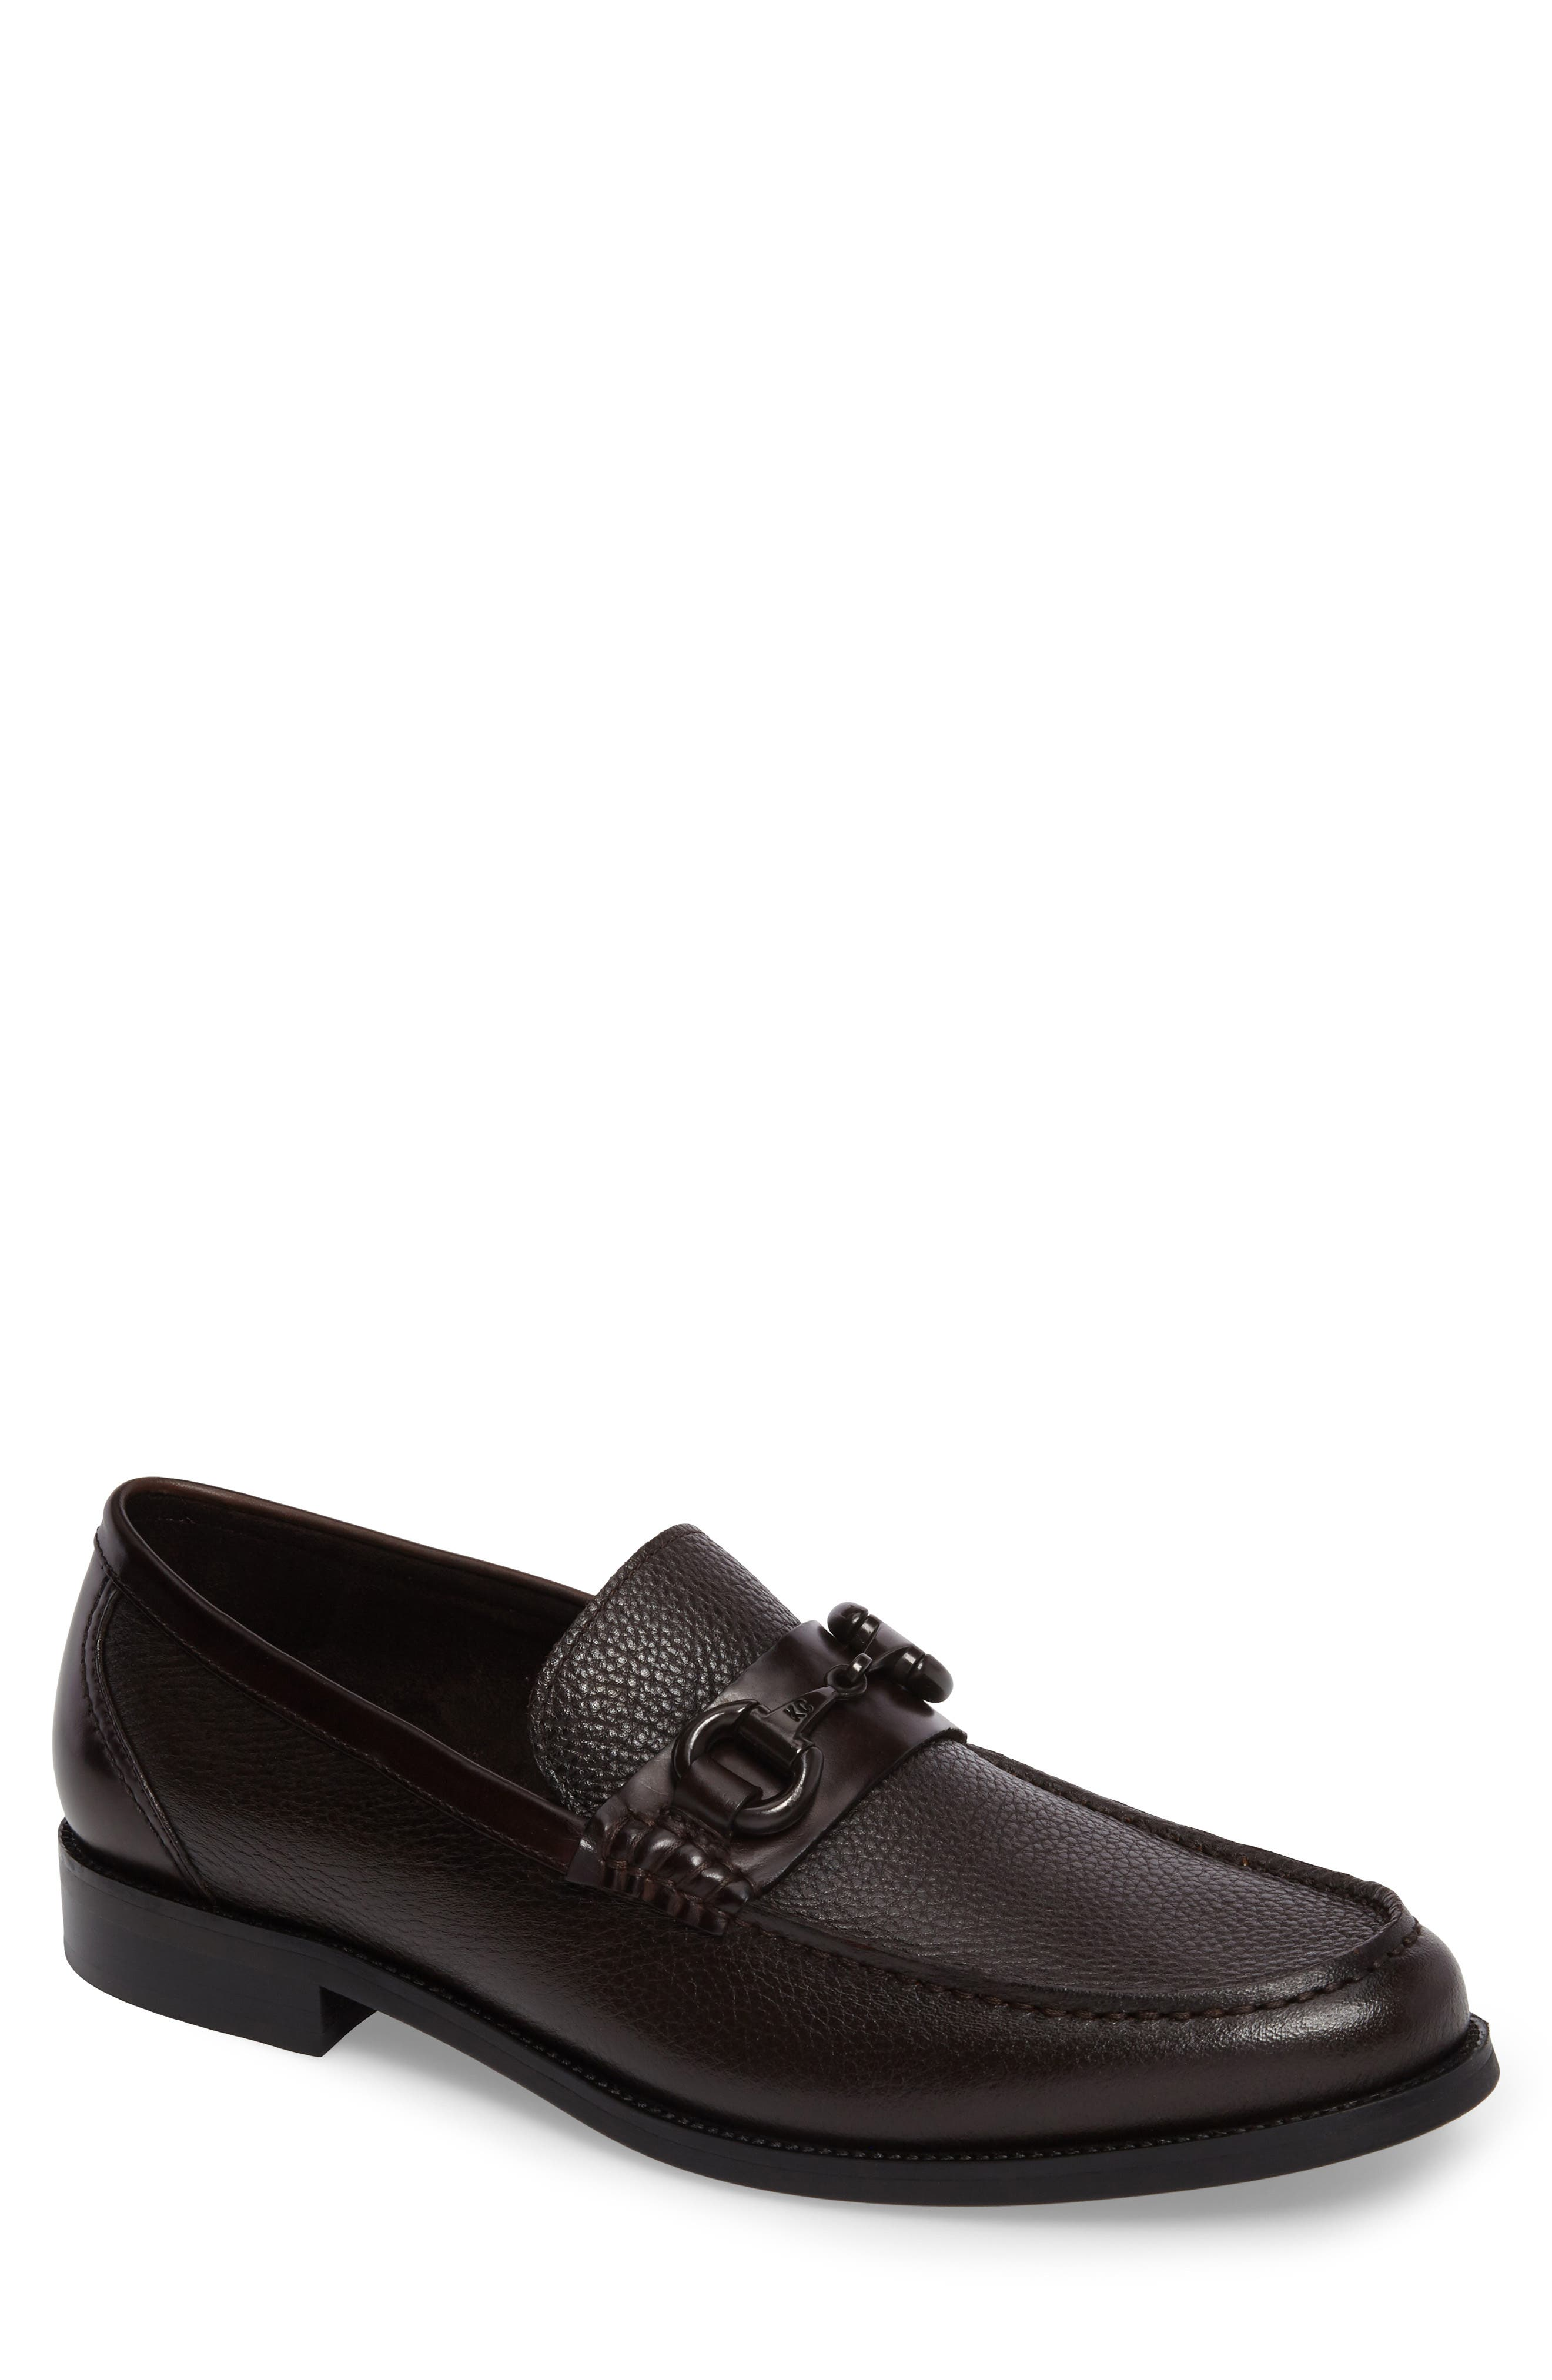 Main Image - Kenneth Cole New York Bit Loafer (Men)